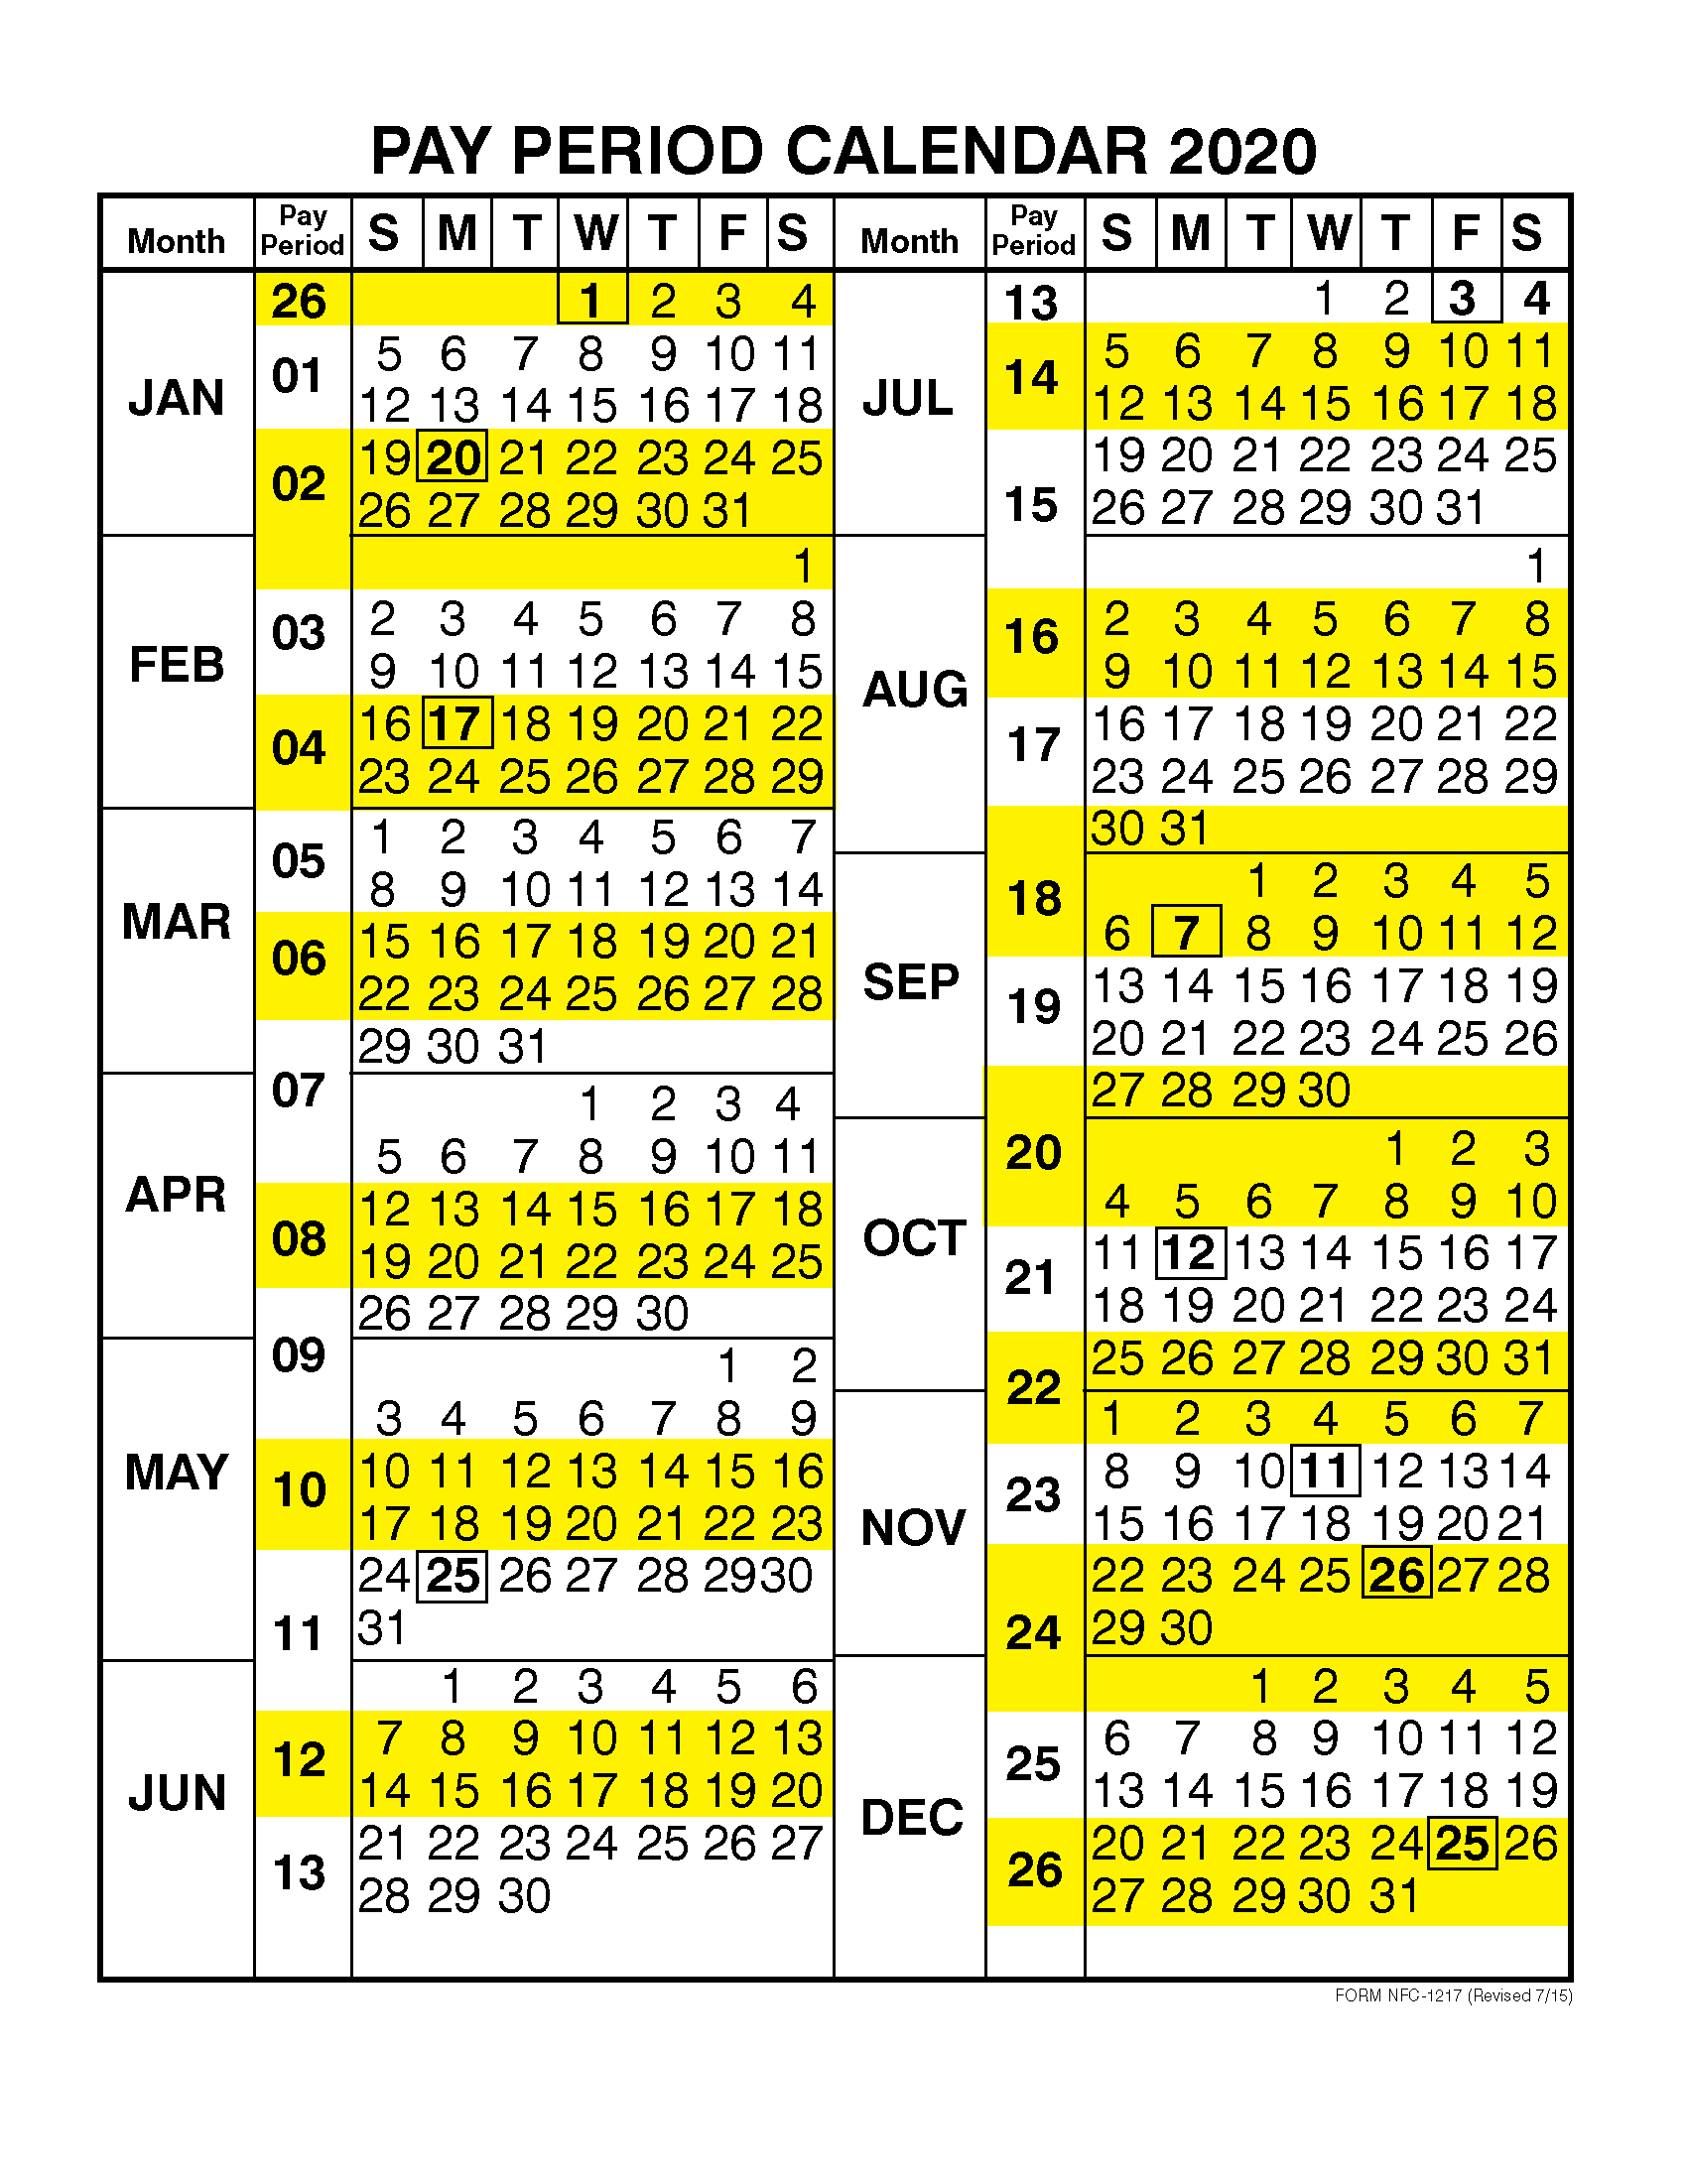 CSULB Payroll Calendar 2020 | 2021 Pay Periods Calendar